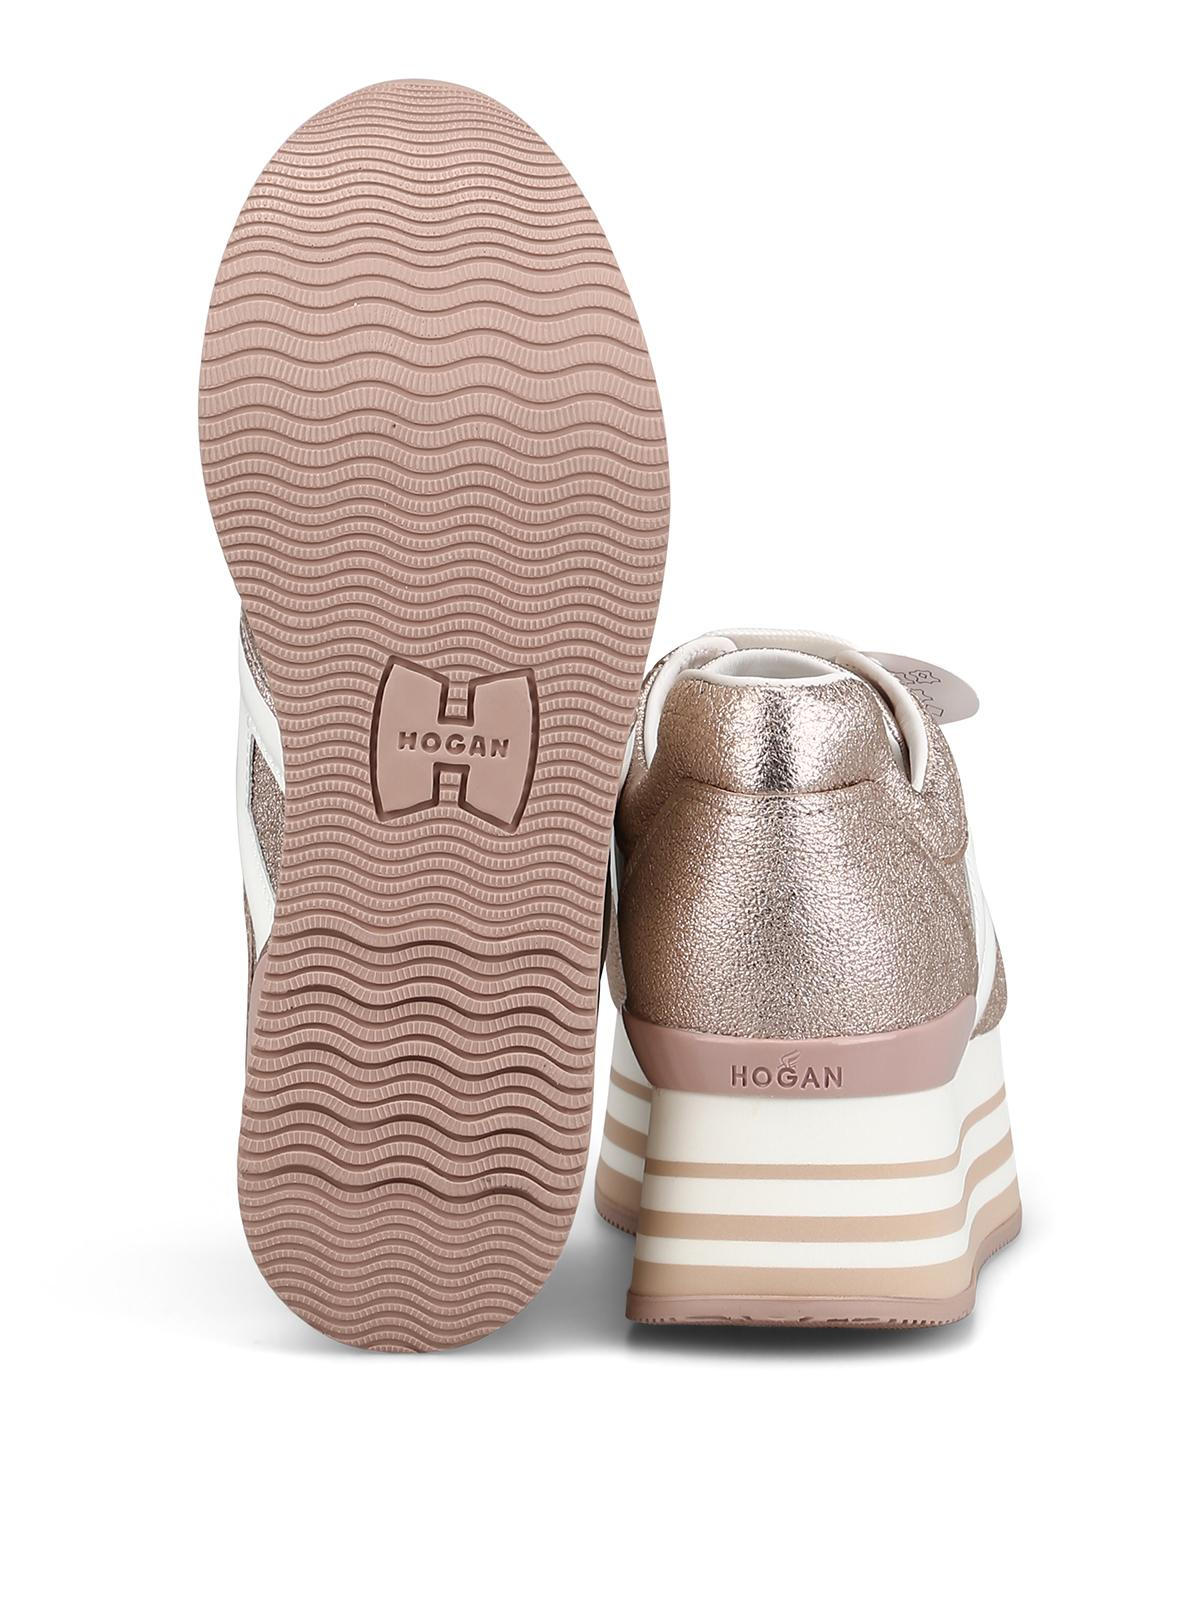 Hogan Maxi H222 Crackle Leather Sneakers in Pink - Lyst